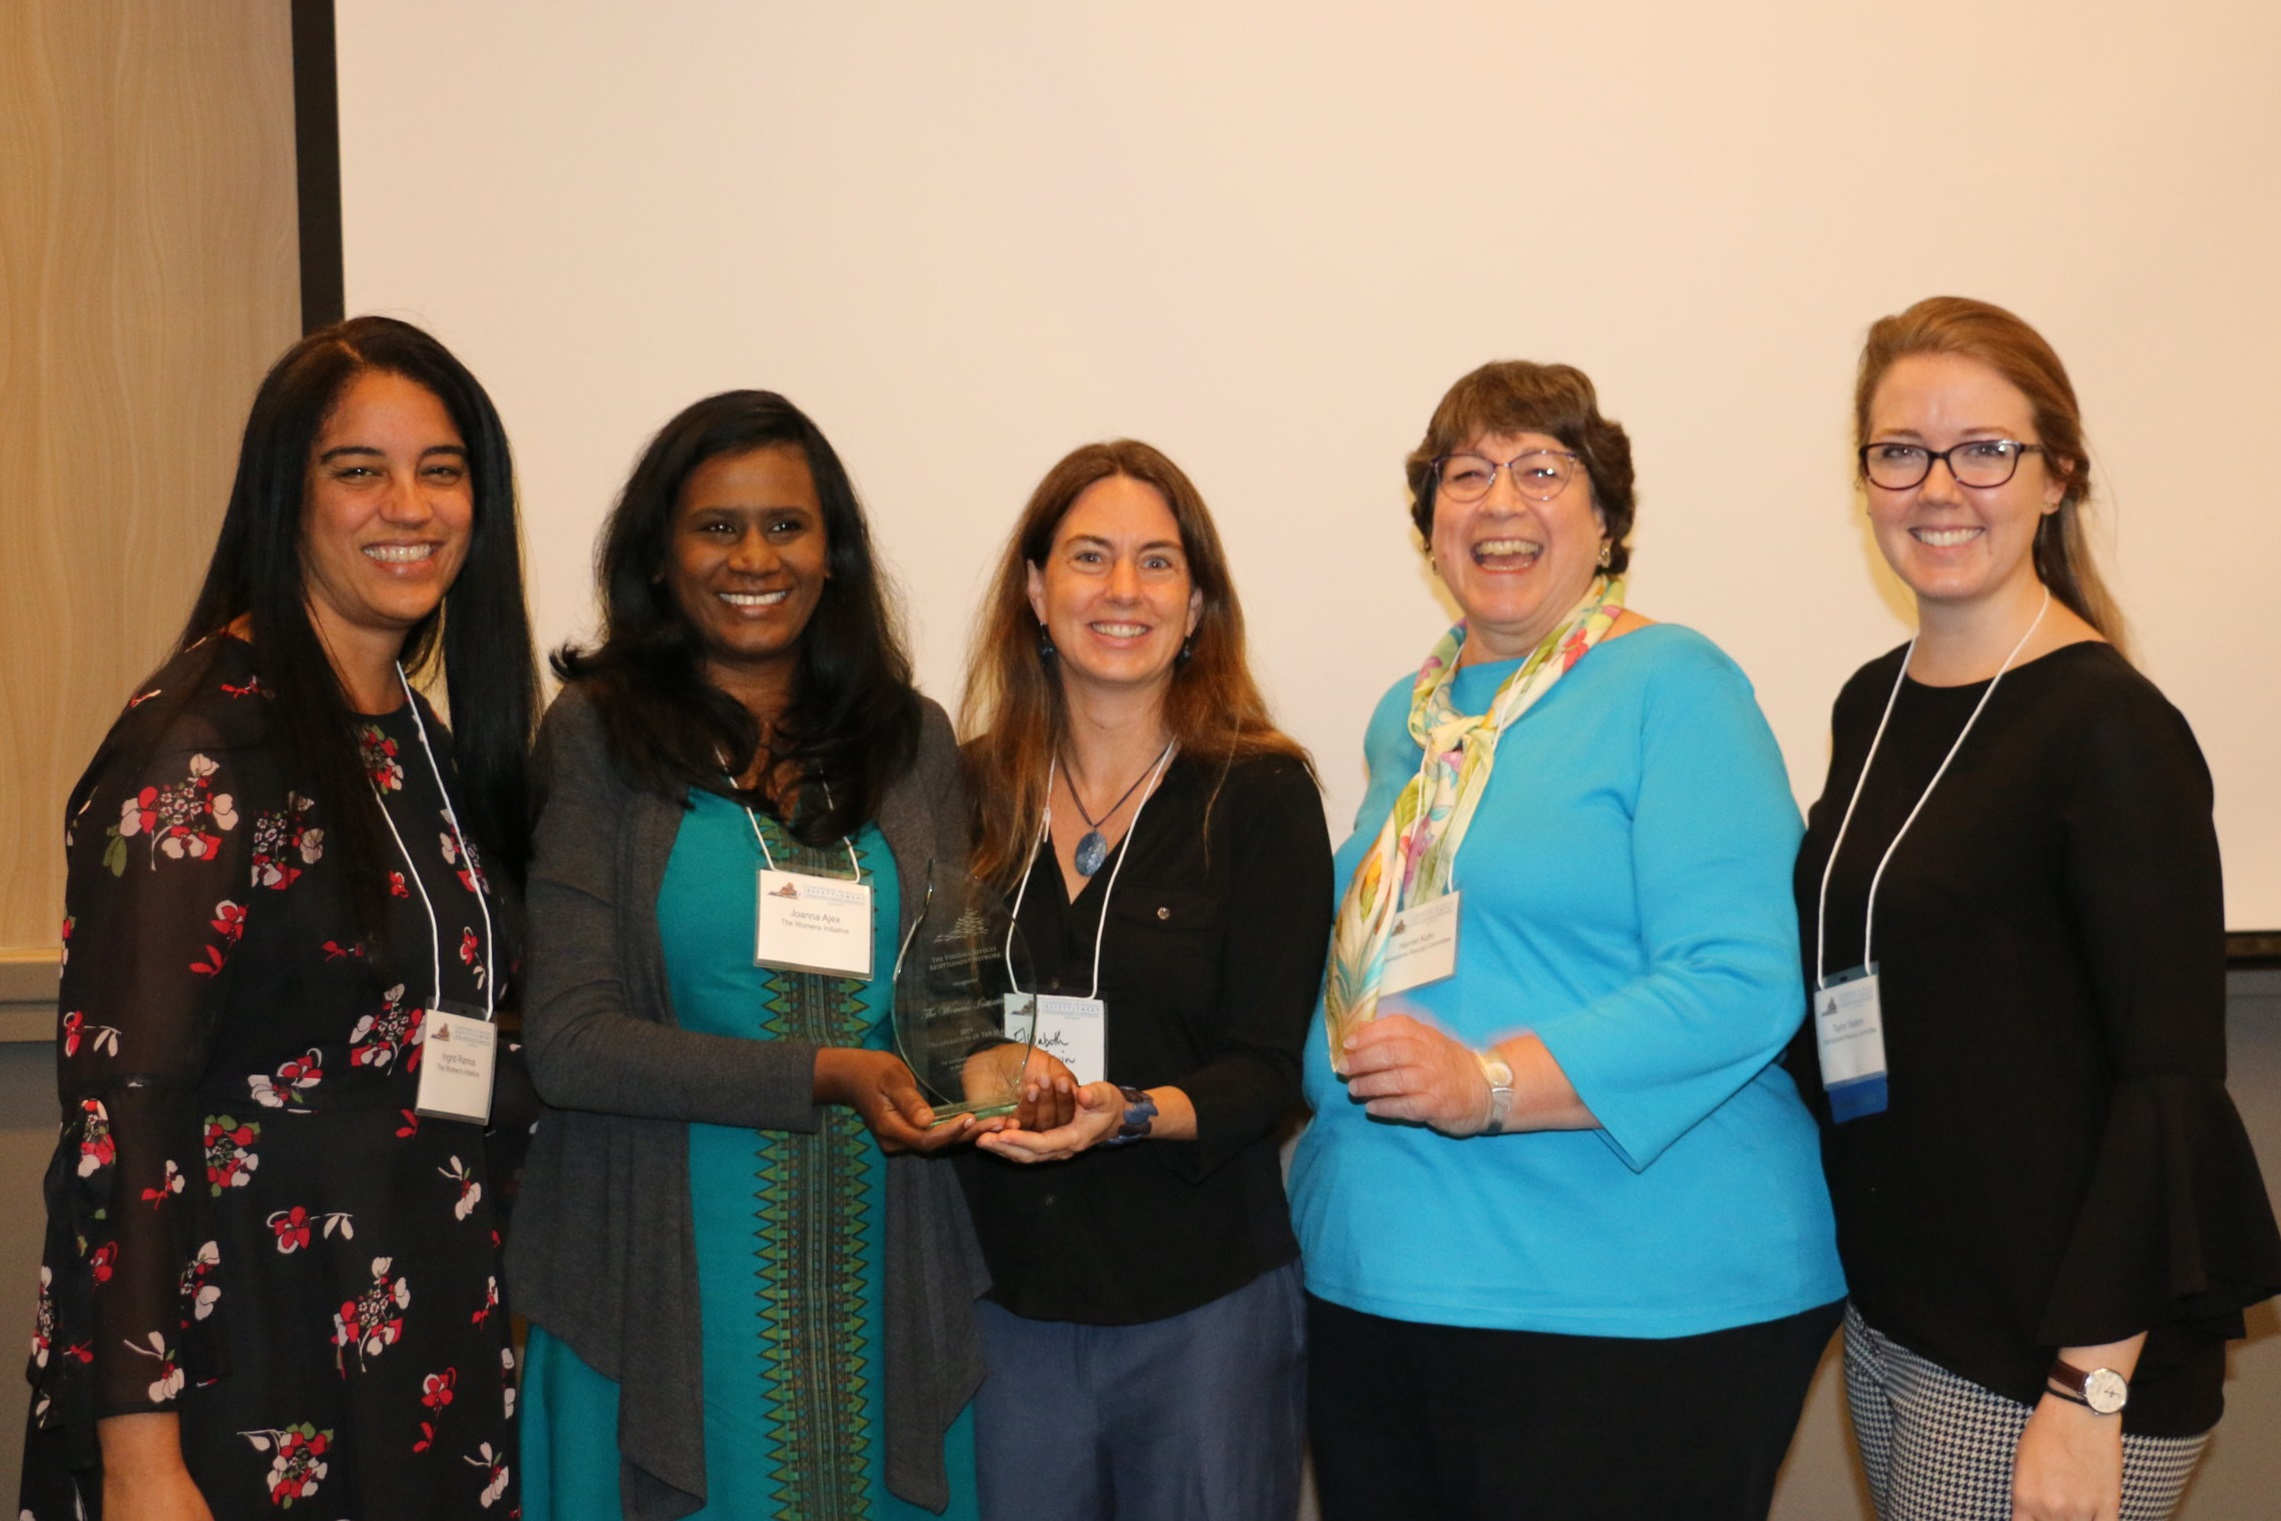 Staff of The Women's Initiative and the International Rescue Committee at the award ceremony in July. The IRC cited the impact of the work of TWI therapist Joanna Ajex, MA, second from left, who provides counseling to refugees at the IRC office in Charlottesville each week.